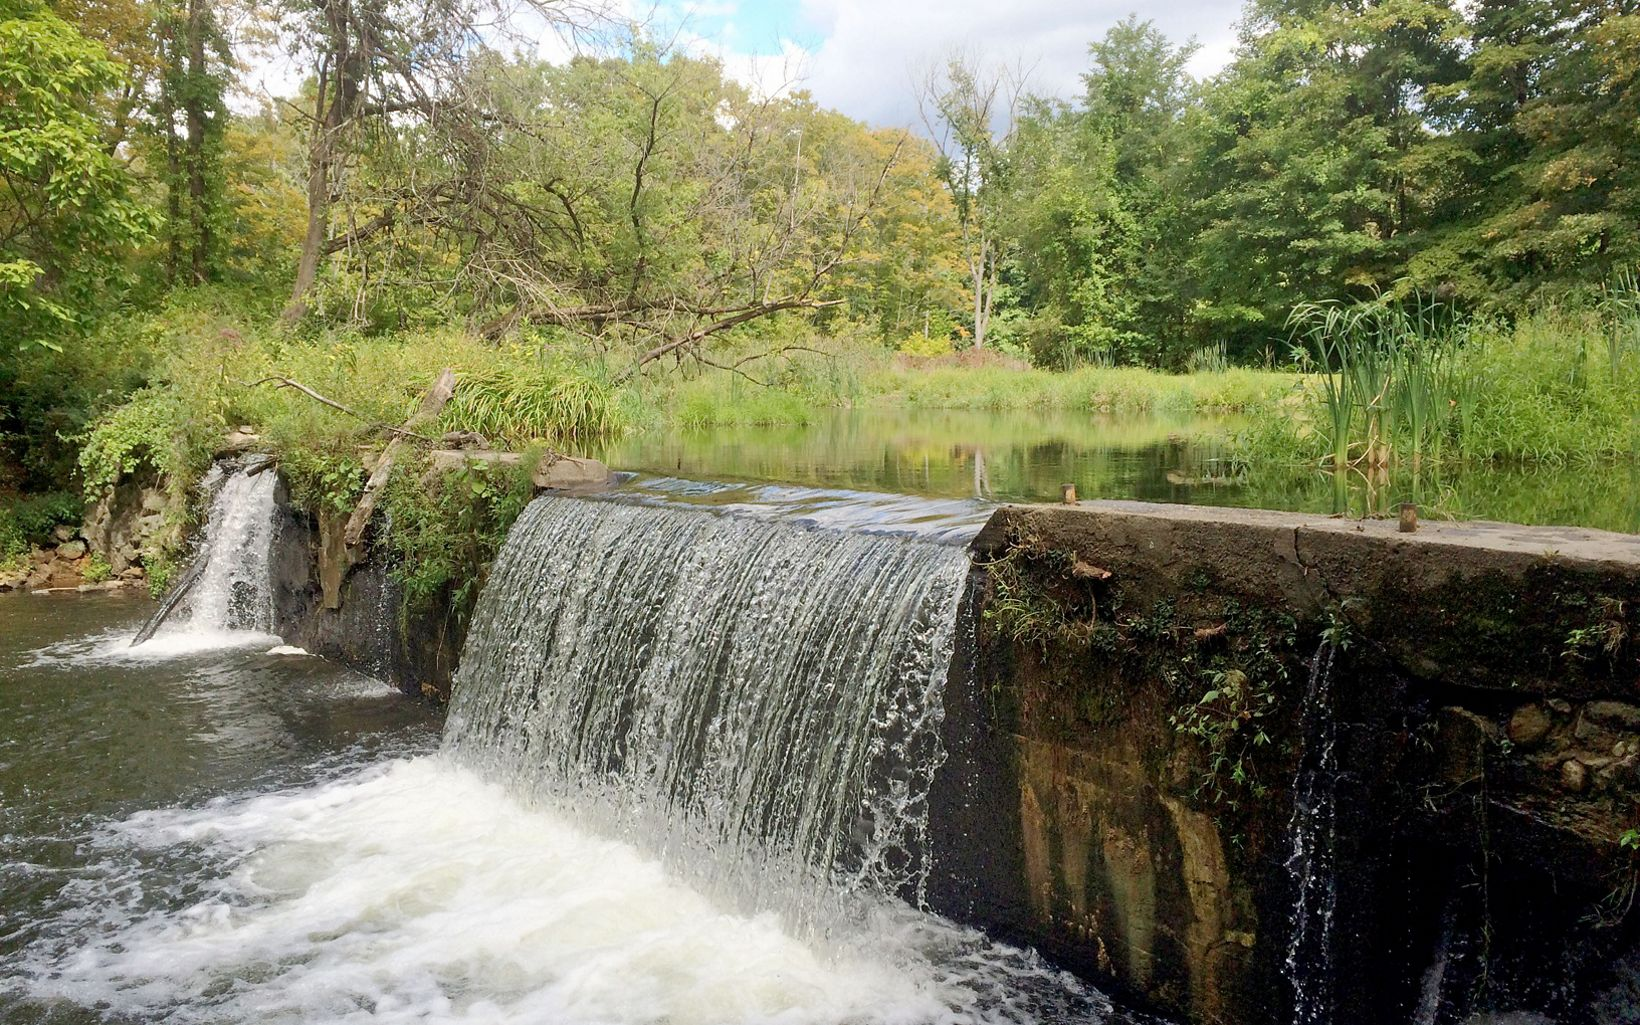 Obsolete dams, like the Old Papermill Dam in Connecticut, can often cause harm to the environment.